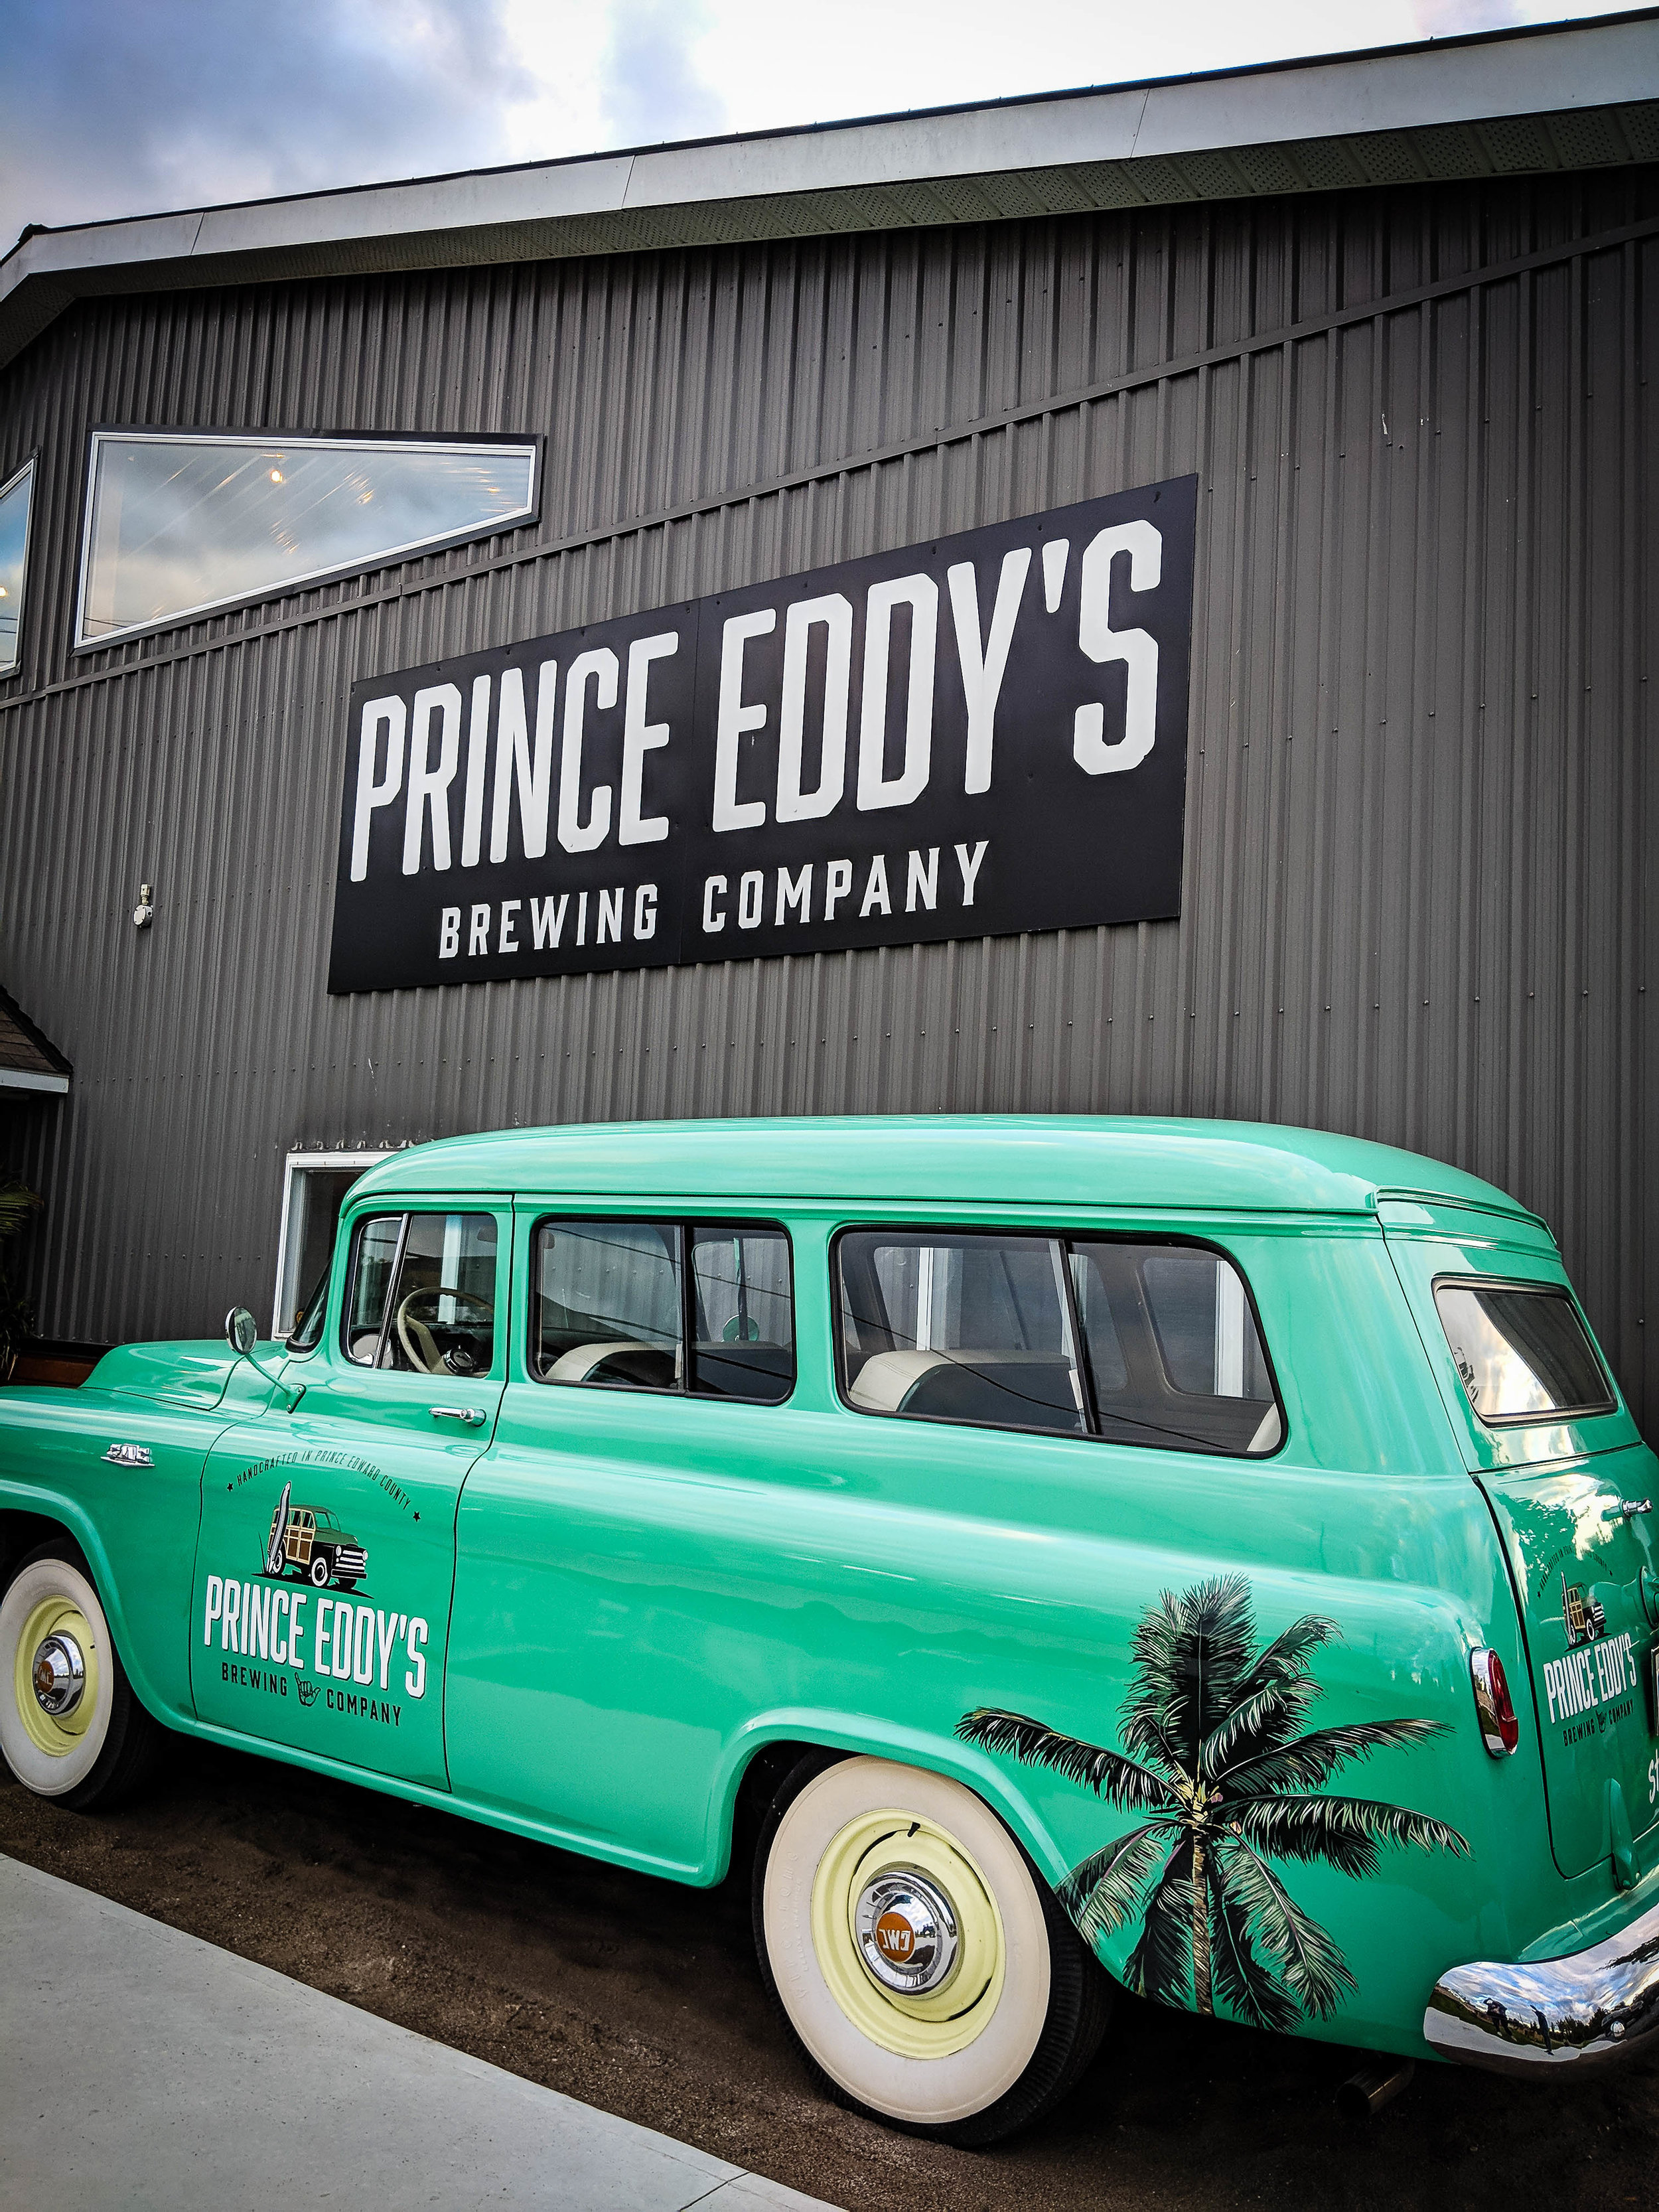 Prince Eddy's Brewery - Things to do in Prince Edward County